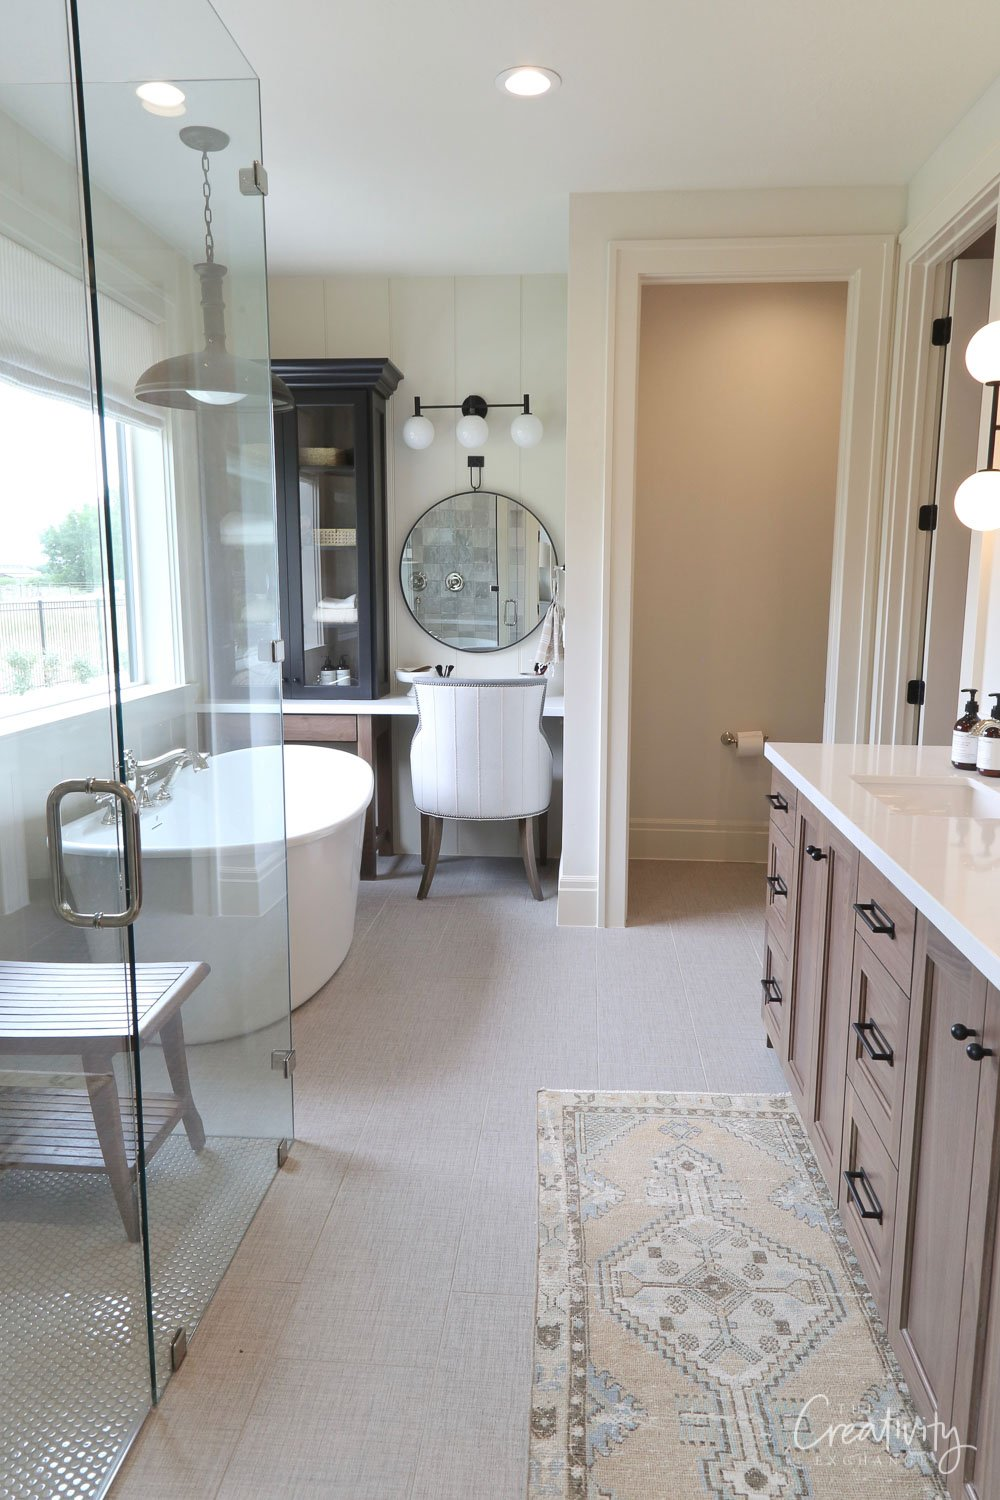 Bathroom wall color is Farrow and Ball Shadow White at 50%